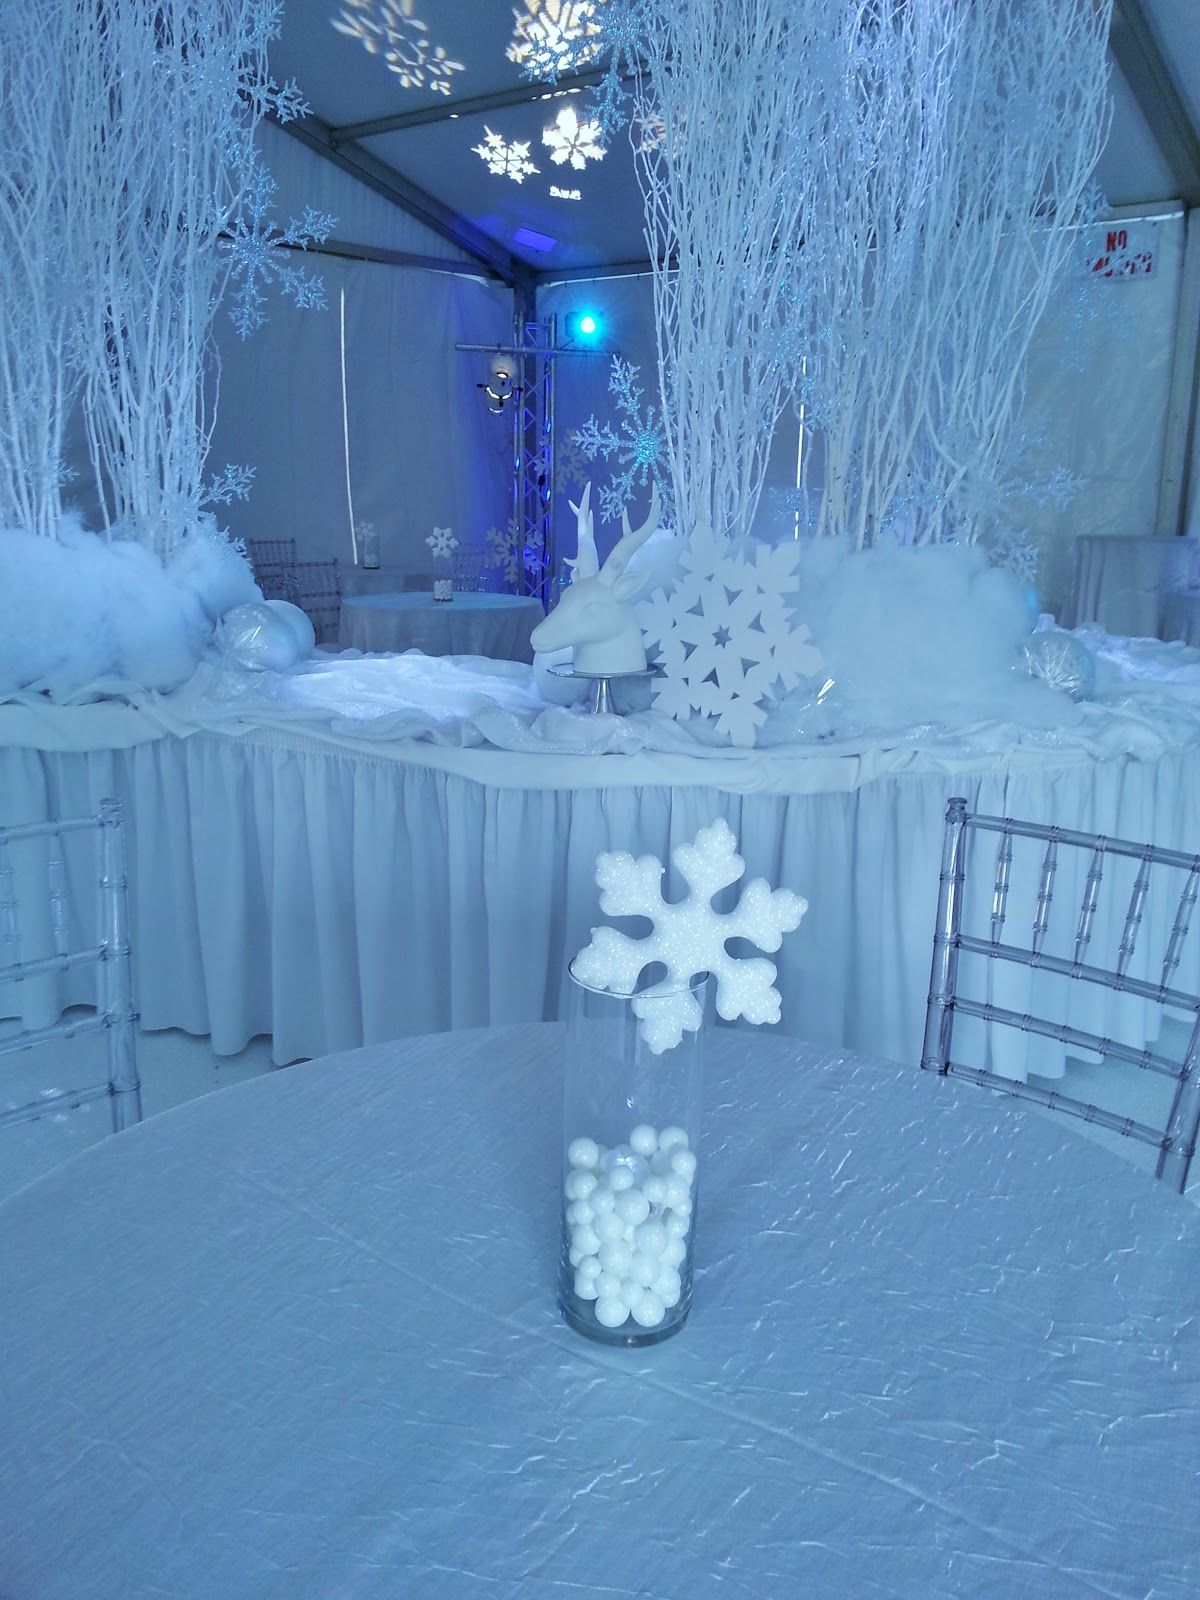 Setting the mood diy wedding pinterest winter sweet